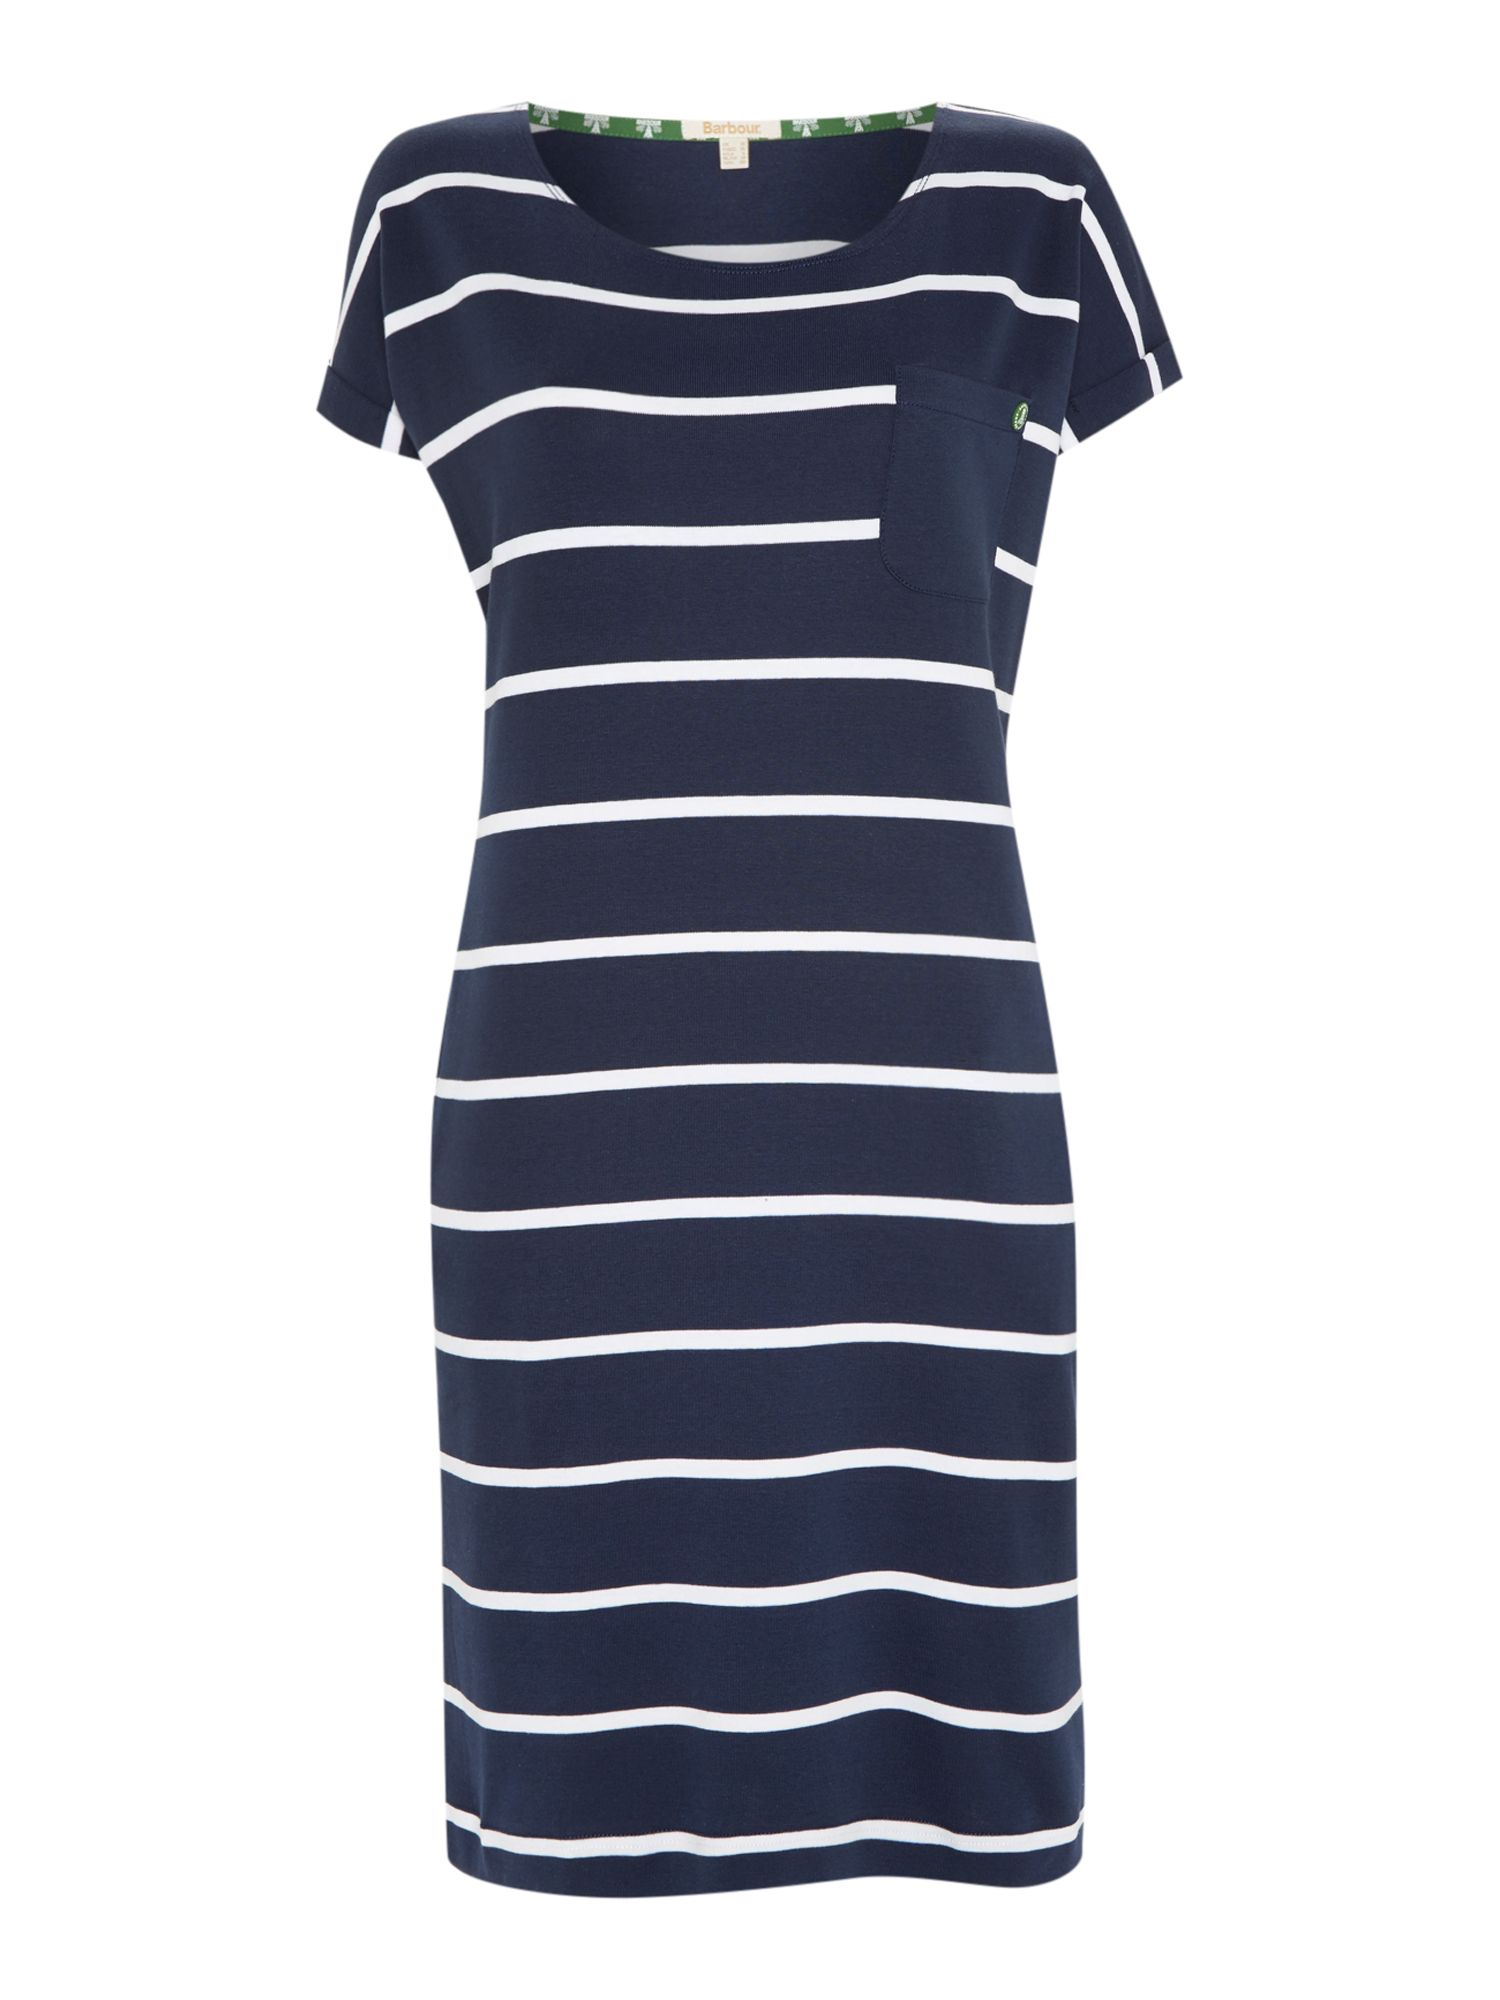 Barbour Blakeney Striped Short Sleeve Jersey Dress, Blue